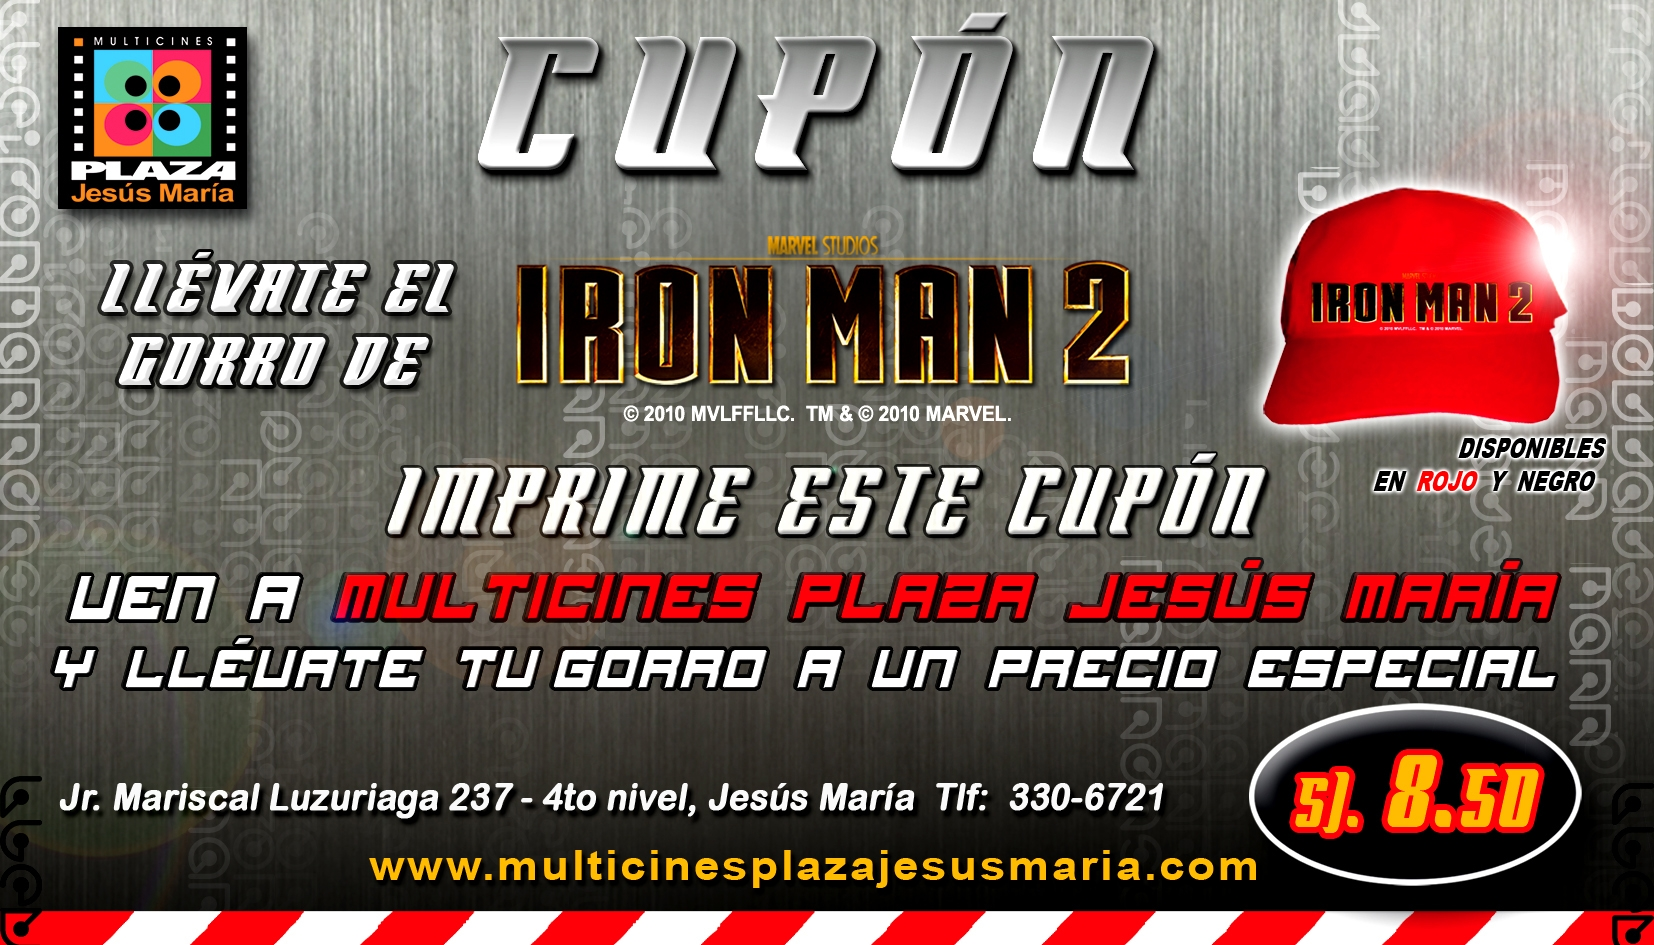 LLEVATE EL GORRO IRON MAN 2 copia[1].JPG